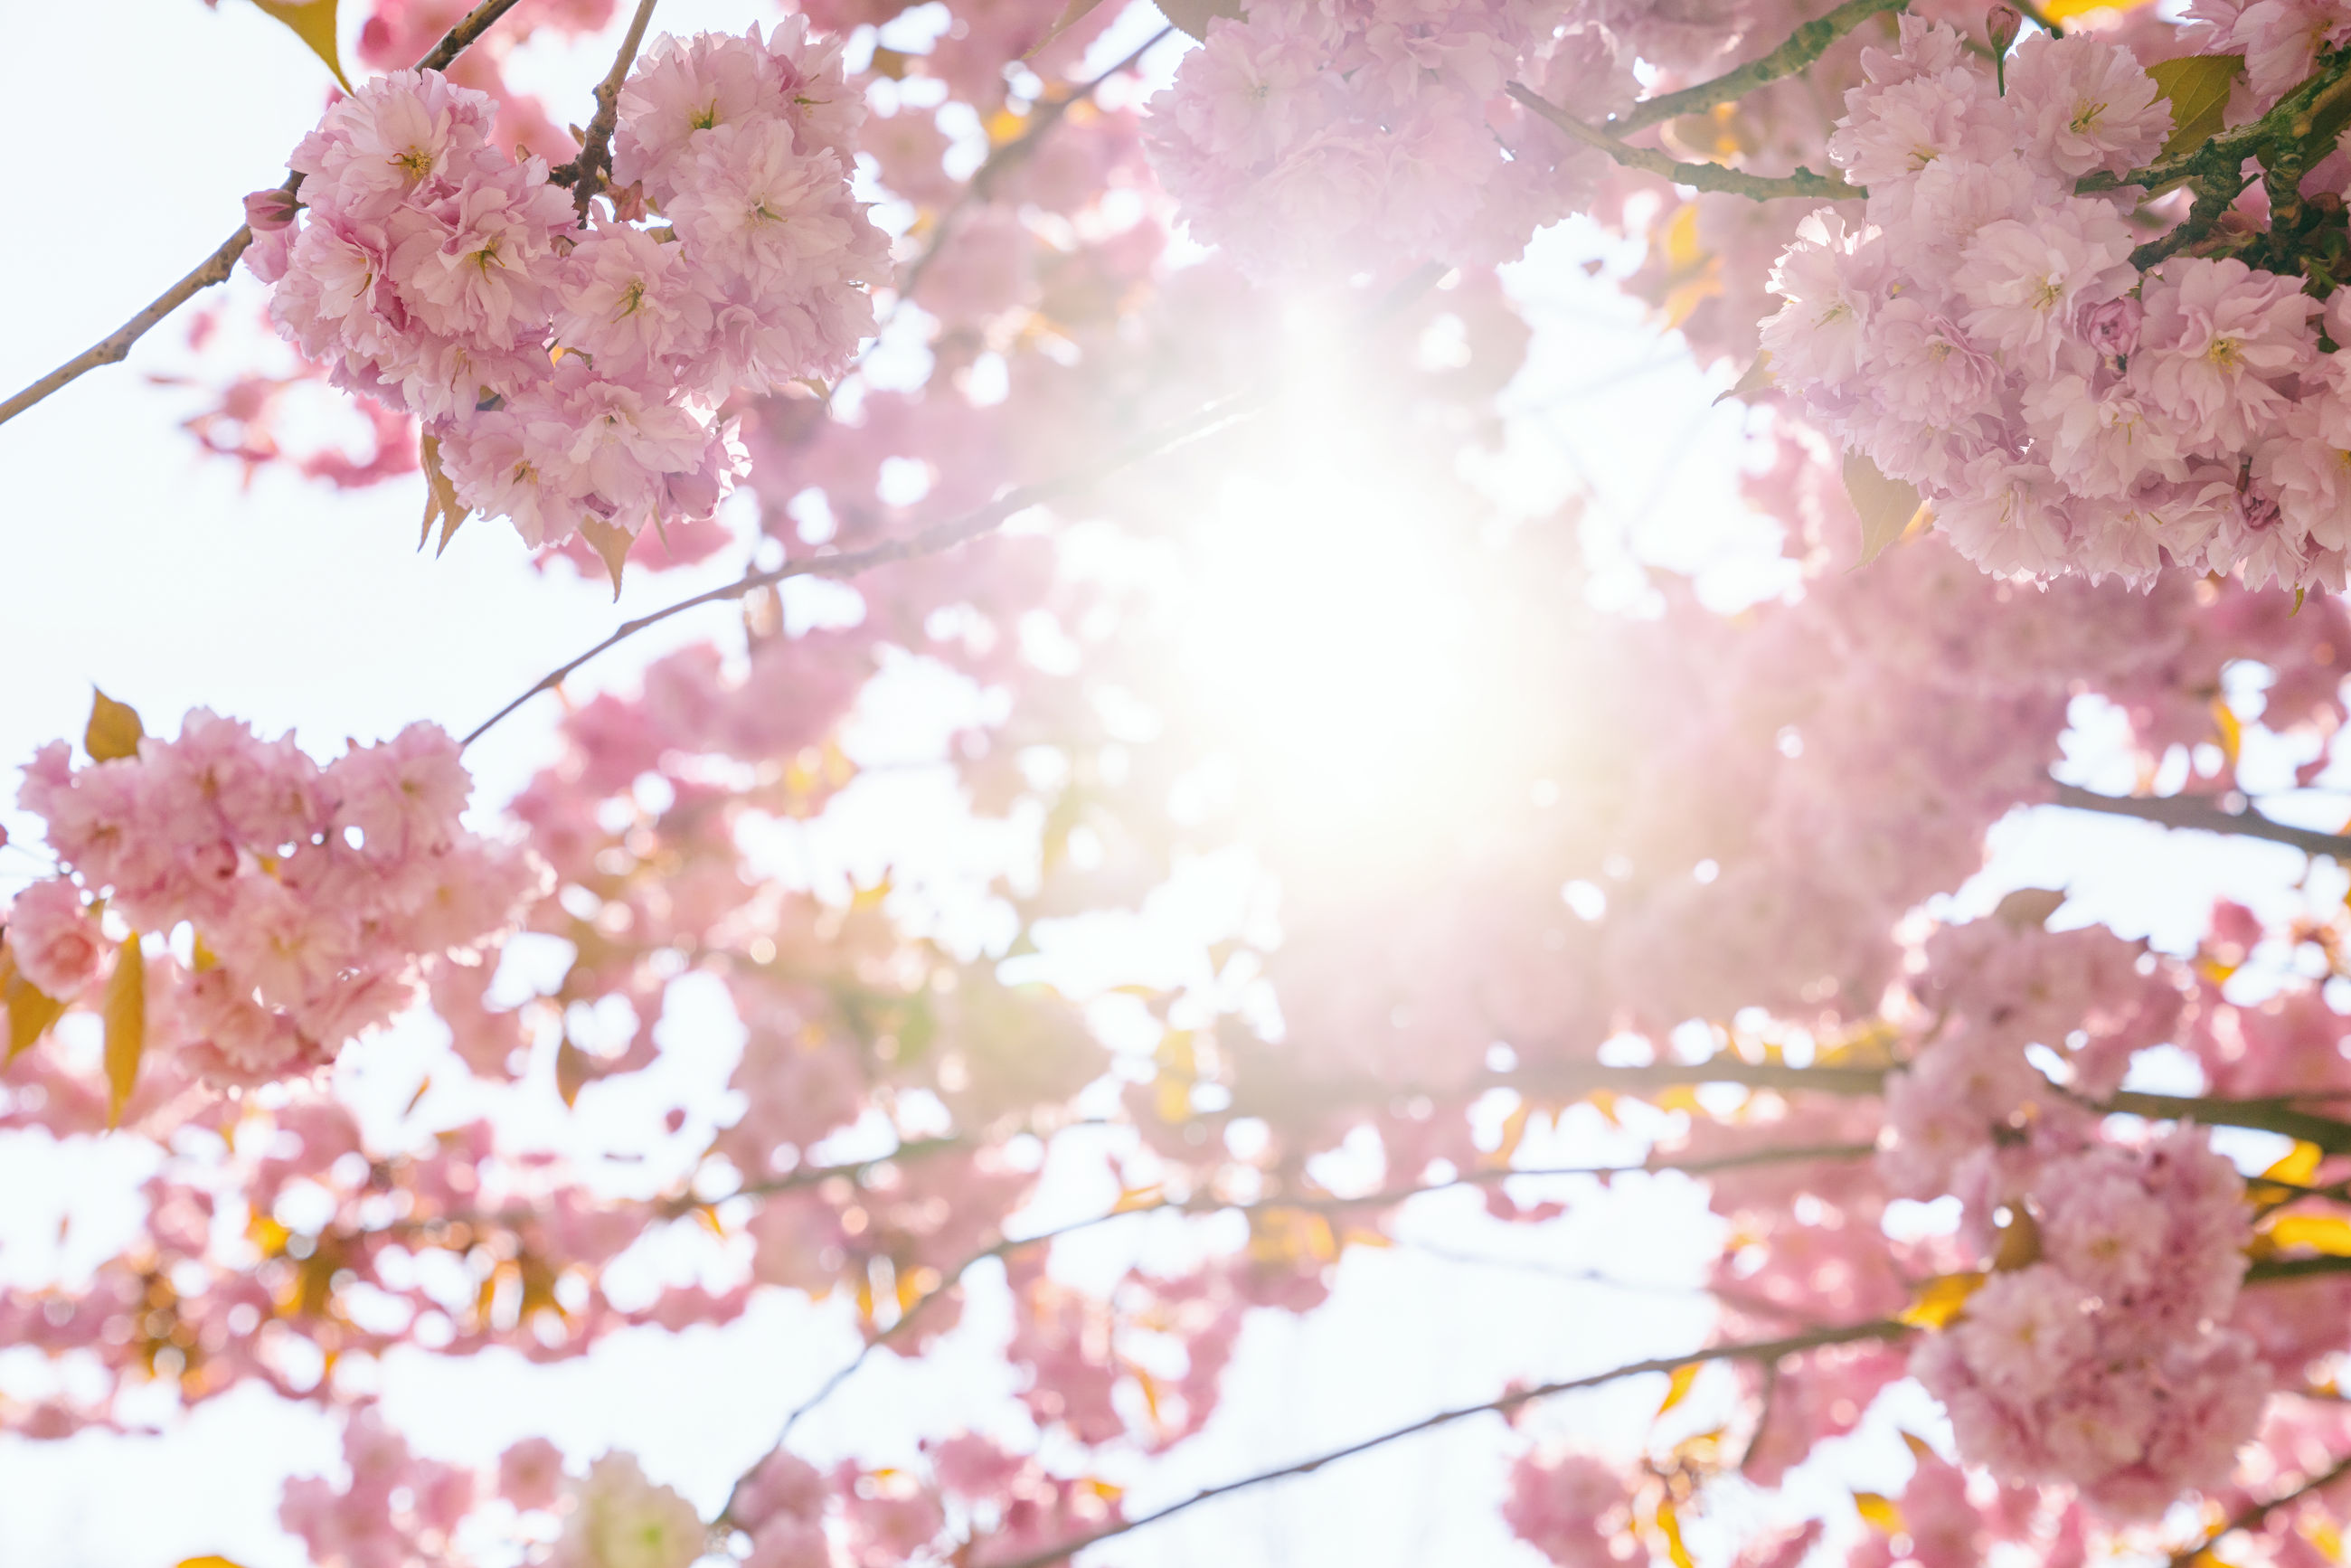 LOW ANGLE VIEW OF PINK CHERRY BLOSSOMS IN SUNLIGHT